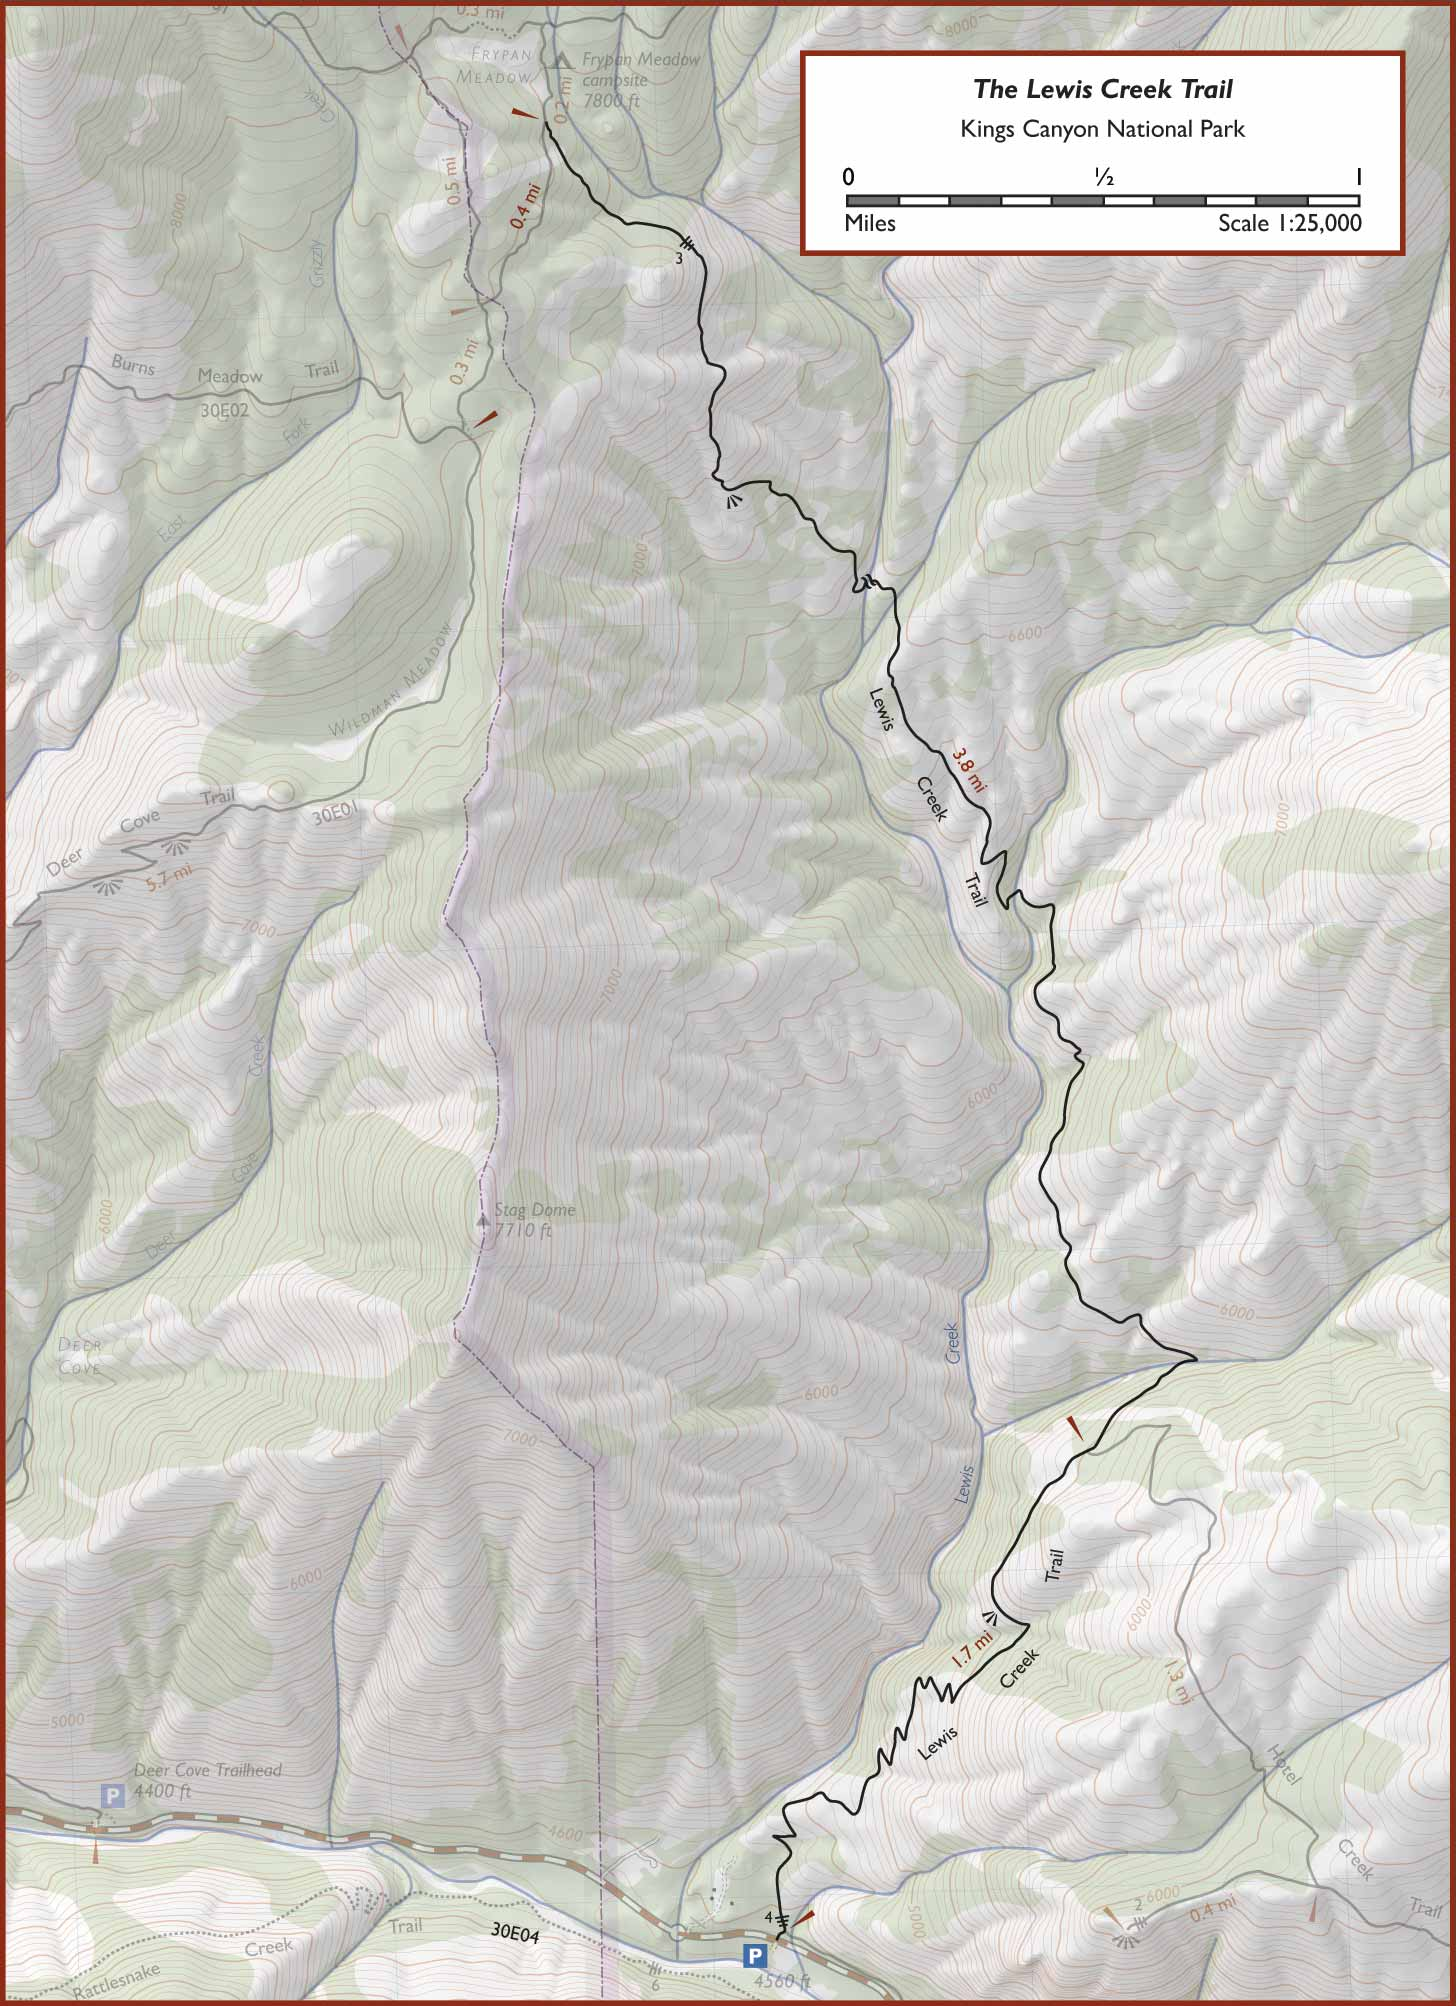 The Lewis Creek Trail on sequoia national forest map, grant grove kings canyon national park map, black canyon of the gunnison trail map, white river national forest trail map, kings canyon scenic byway map, san bernardino national forest trail map, los padres national forest trail map, kings canyon trail az, paradise valley kings canyon map, point reyes national seashore trail map, kings canyon national park weather, big thicket national preserve trail map, hawaii volcanoes national park trail map, great smoky national park trail map, cuyahoga valley national park trail map, calaveras big trees state park trail map, kings canyon park detailed trail maps, mt. rainier national park trail map, el yunque national forest trail map,